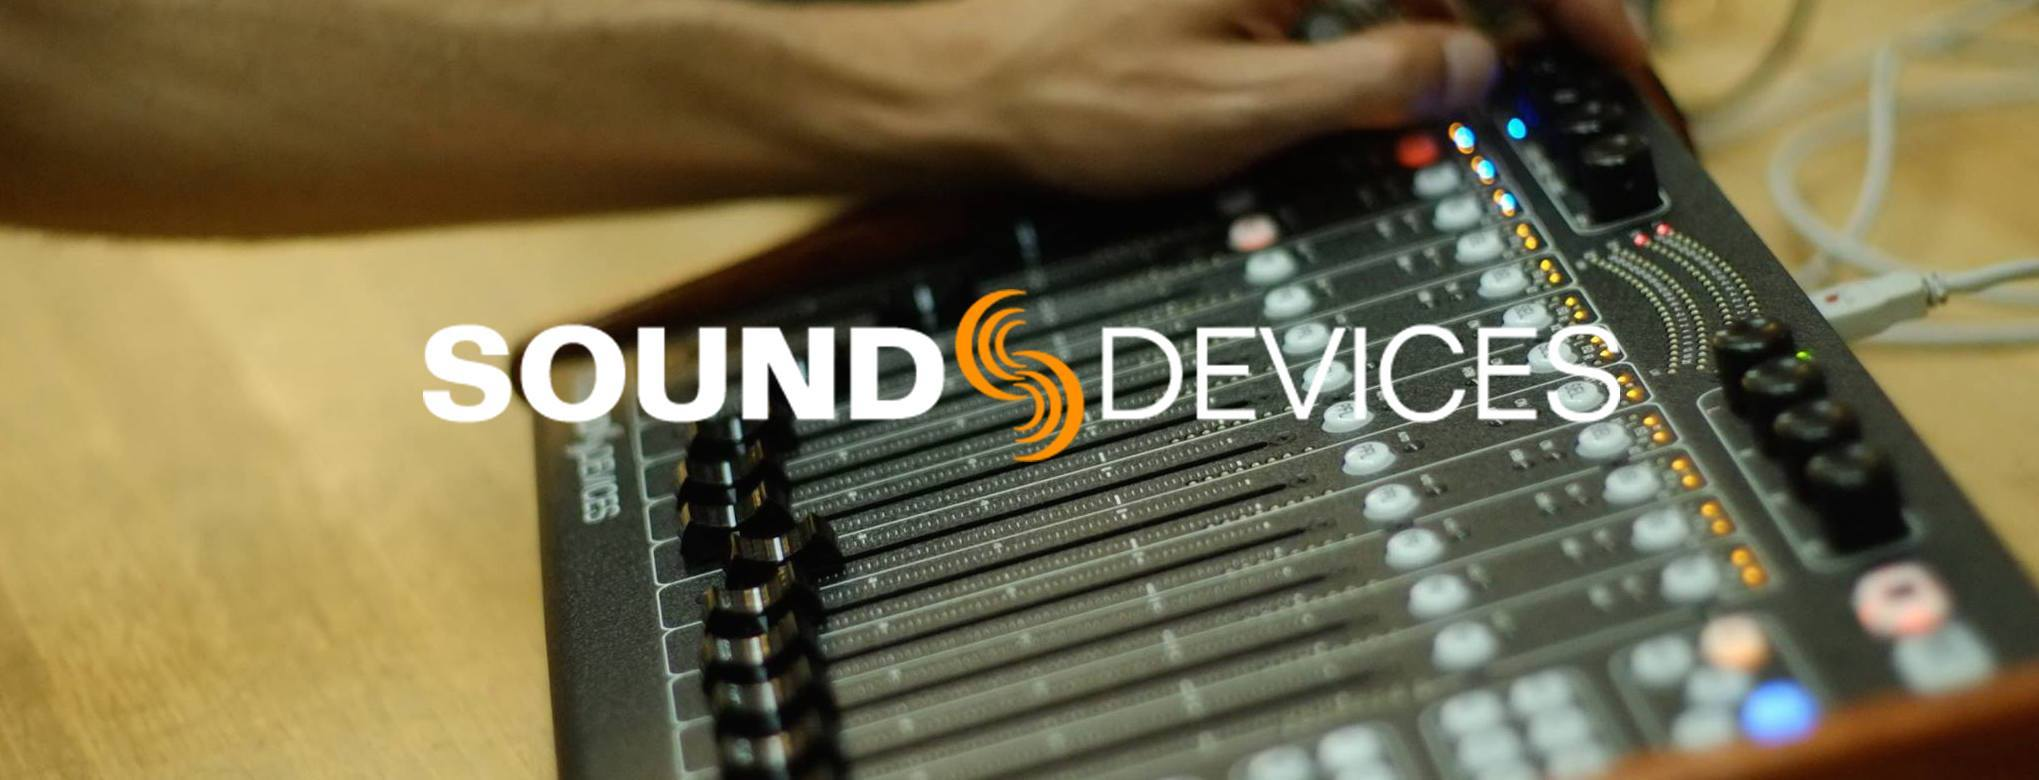 equipos sonido sound devices